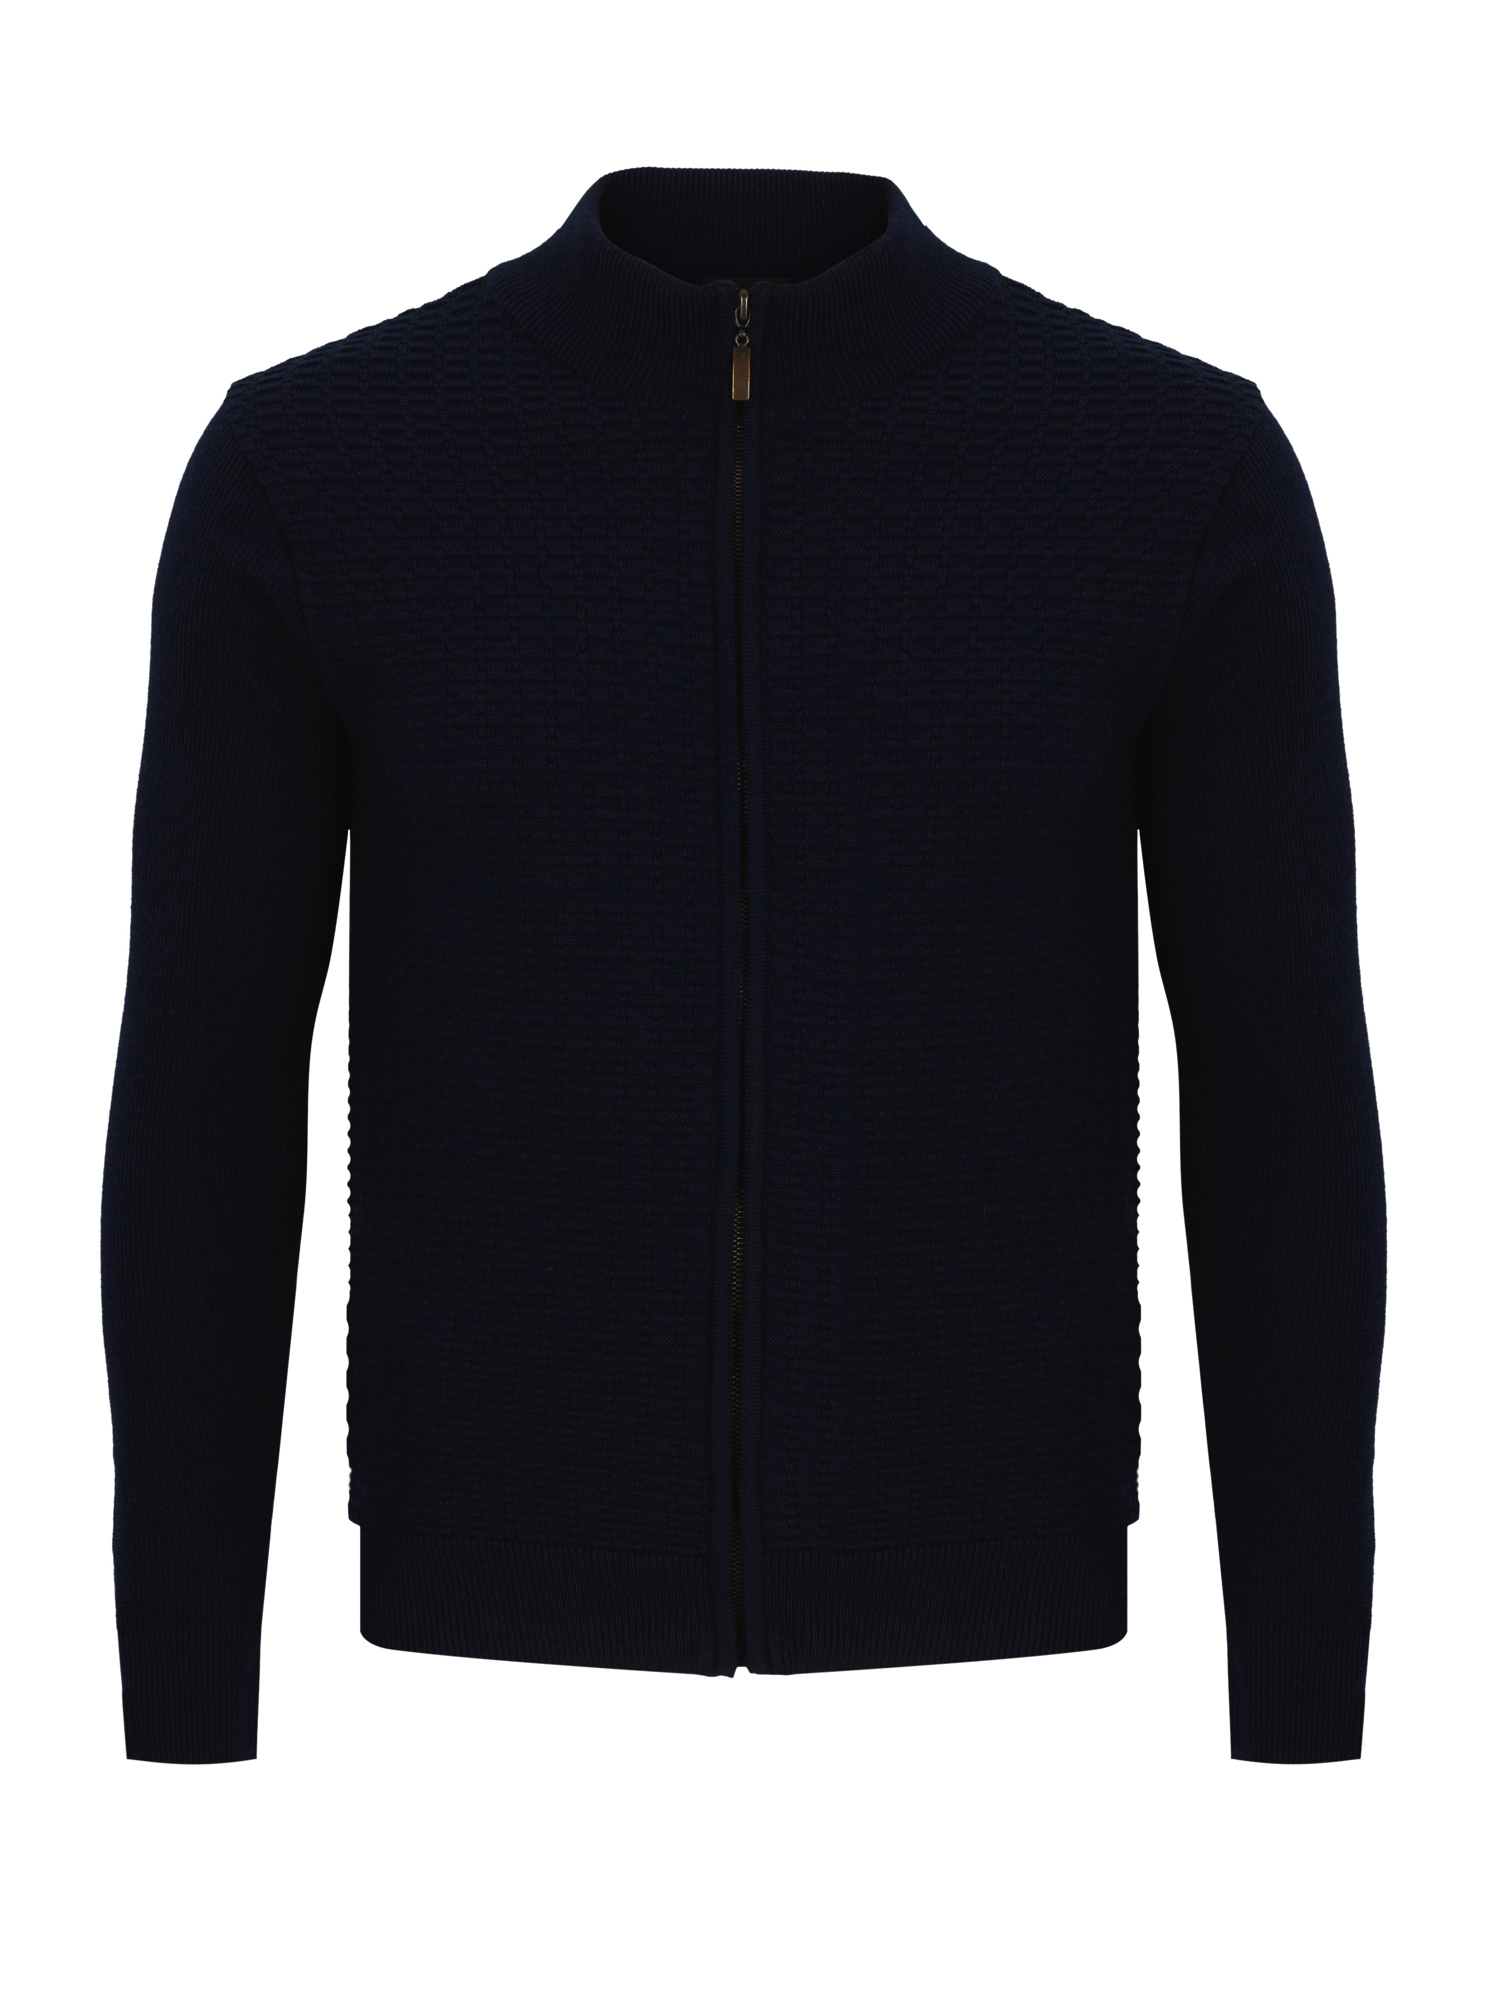 Remus Uomo navy full zip sweater 58300/78